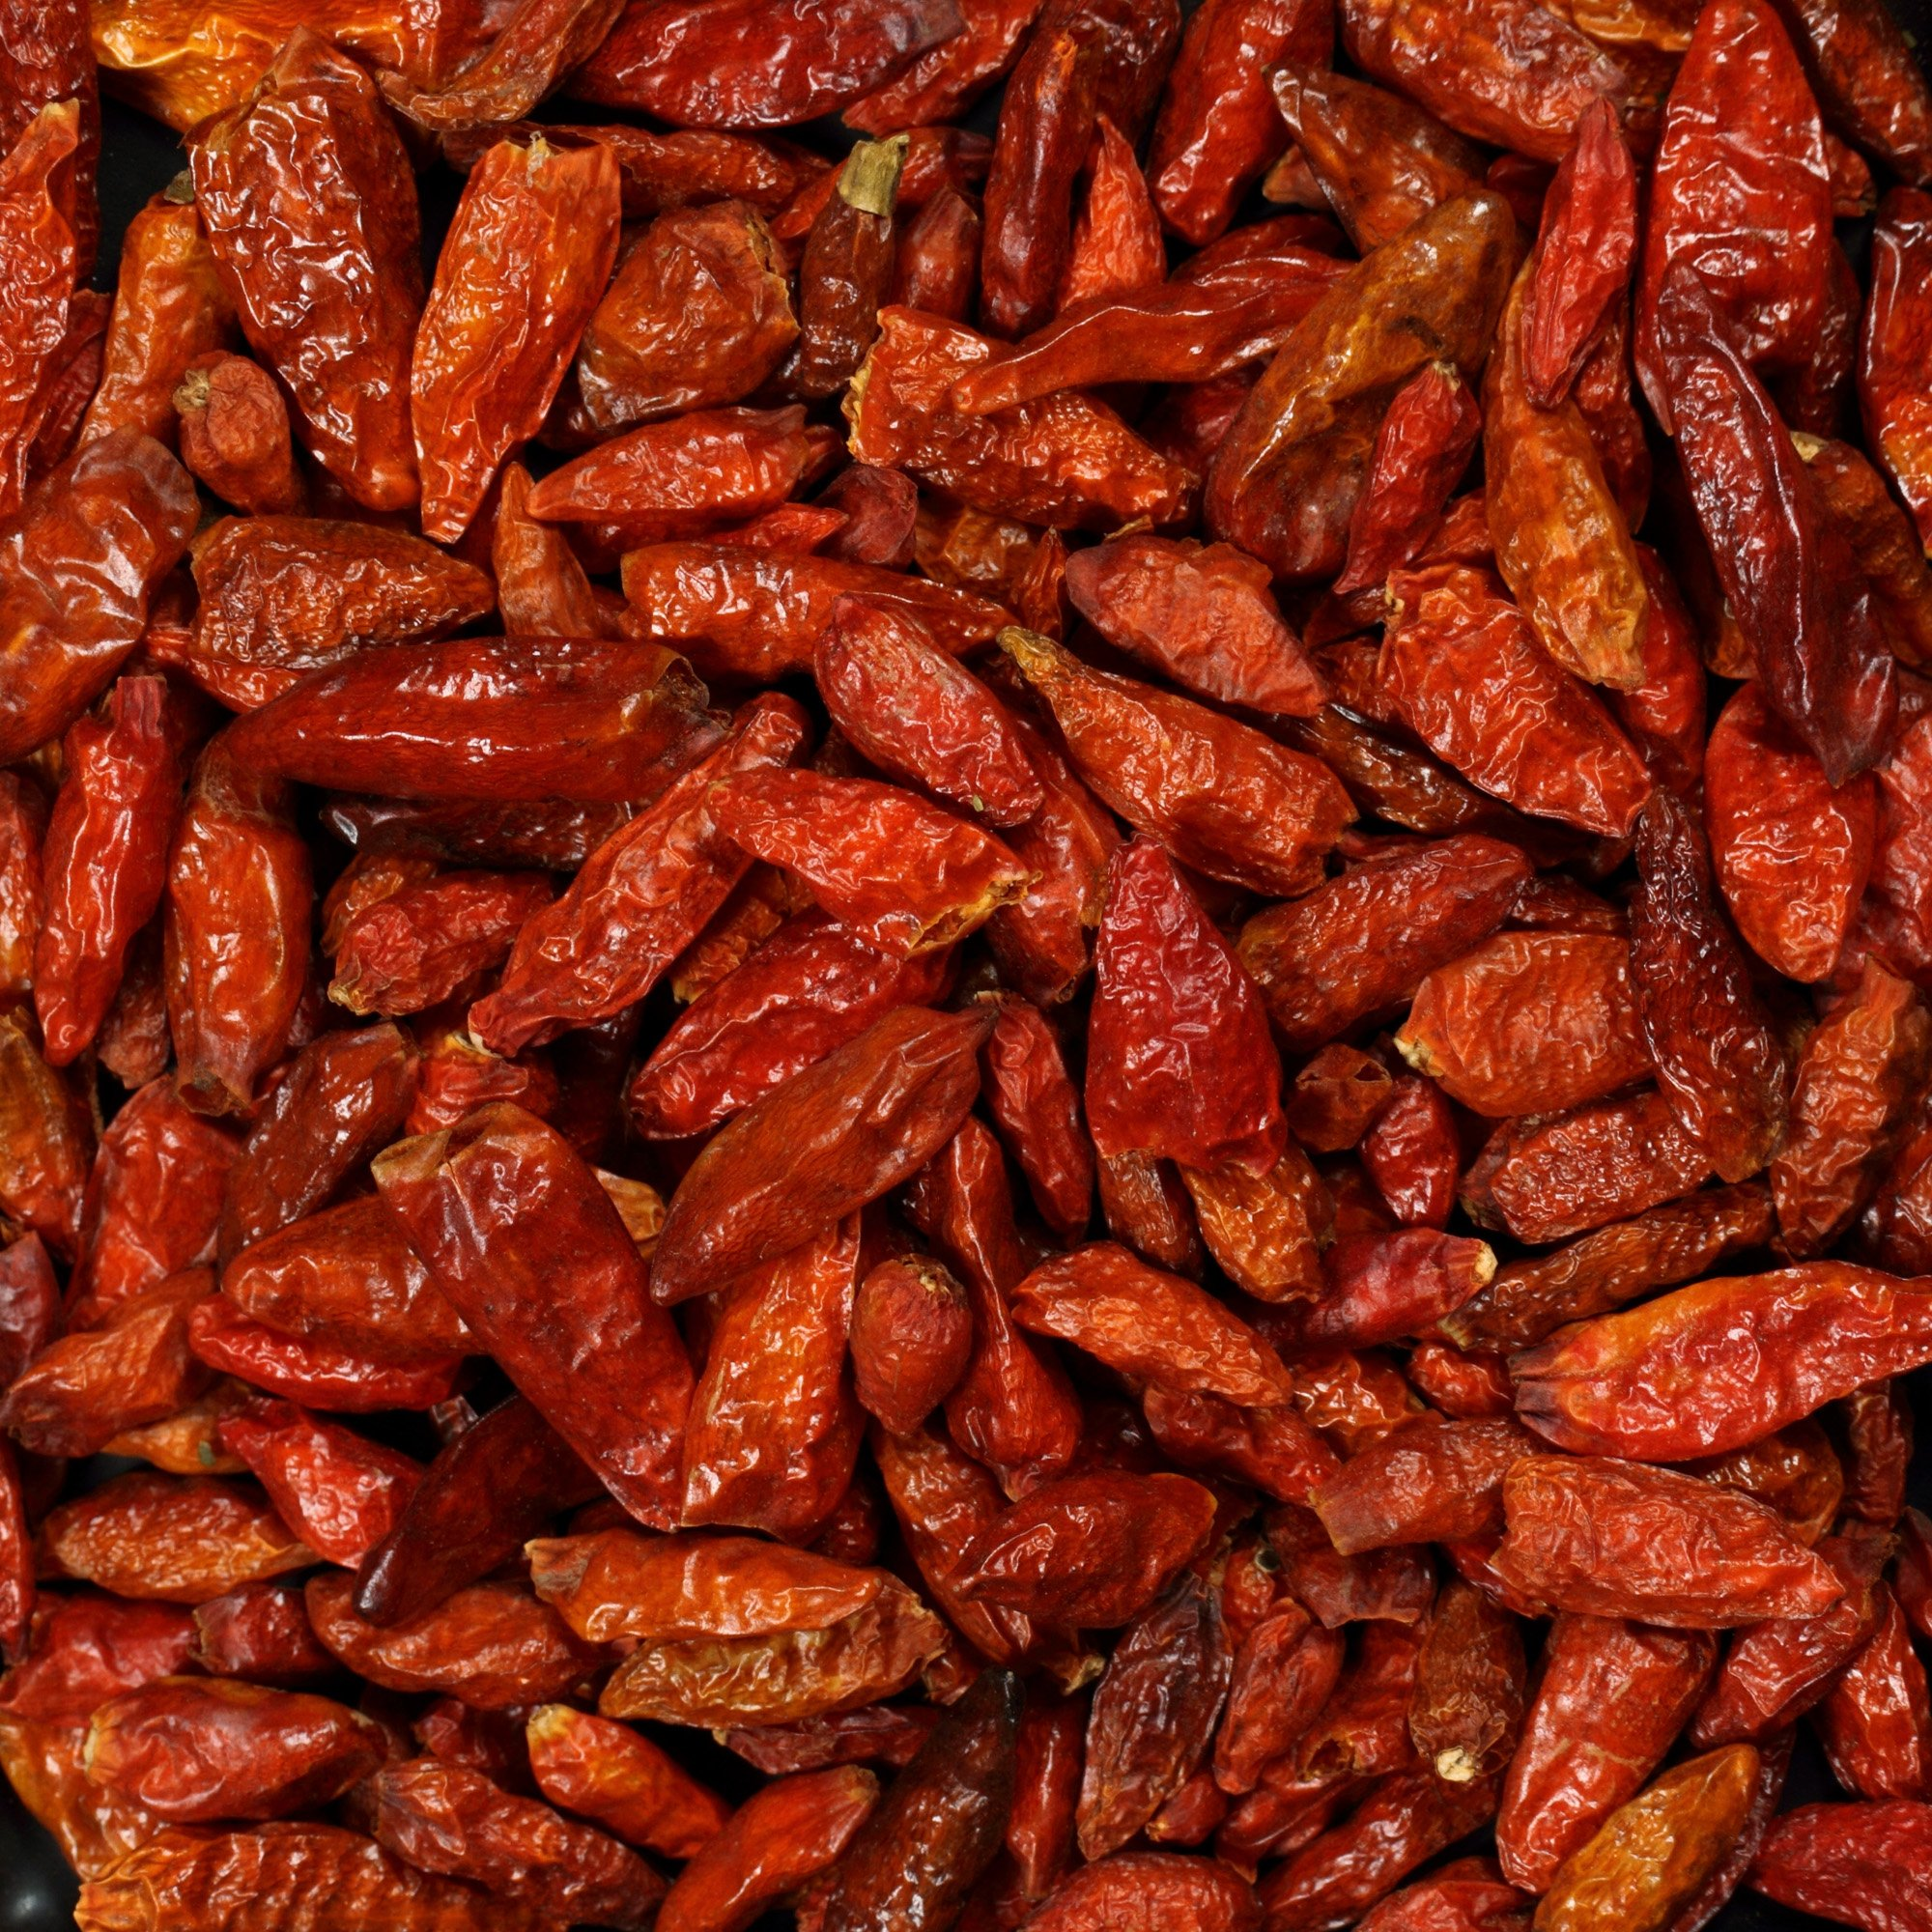 The Spice Lab No. 121 - Whole Birdseye Chile Peppers - Kosher Gluten-Free Non-GMO All Natural Pepper - 1 lb Resealable Bag